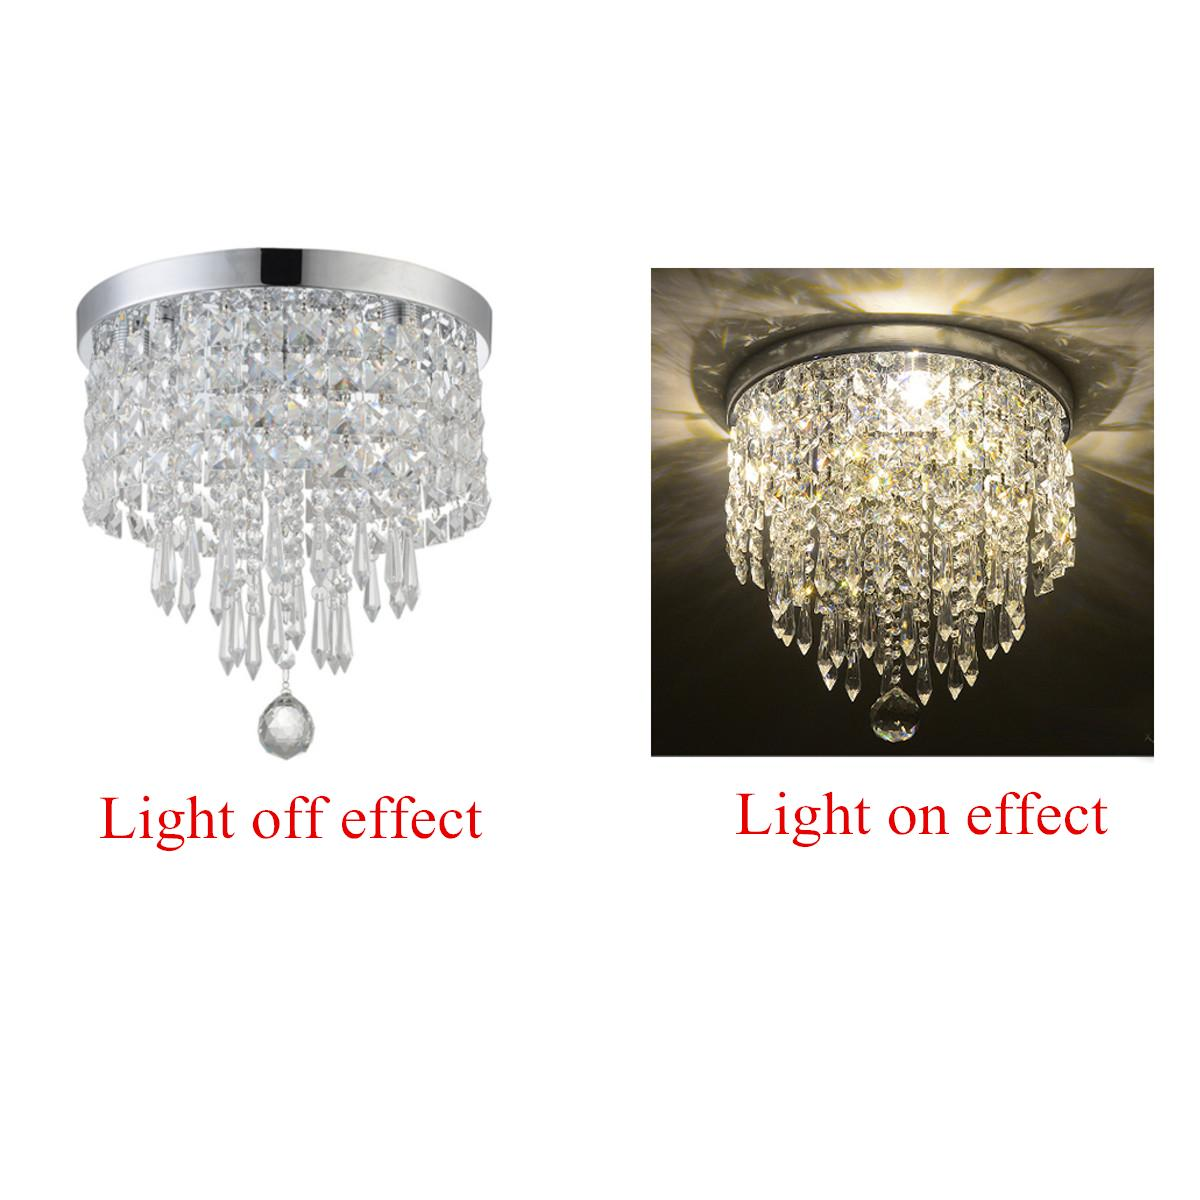 Elegant Chandelier Crystal Lamp Light Ceiling Flush Mount Fixture Home Decor - intl#White Light